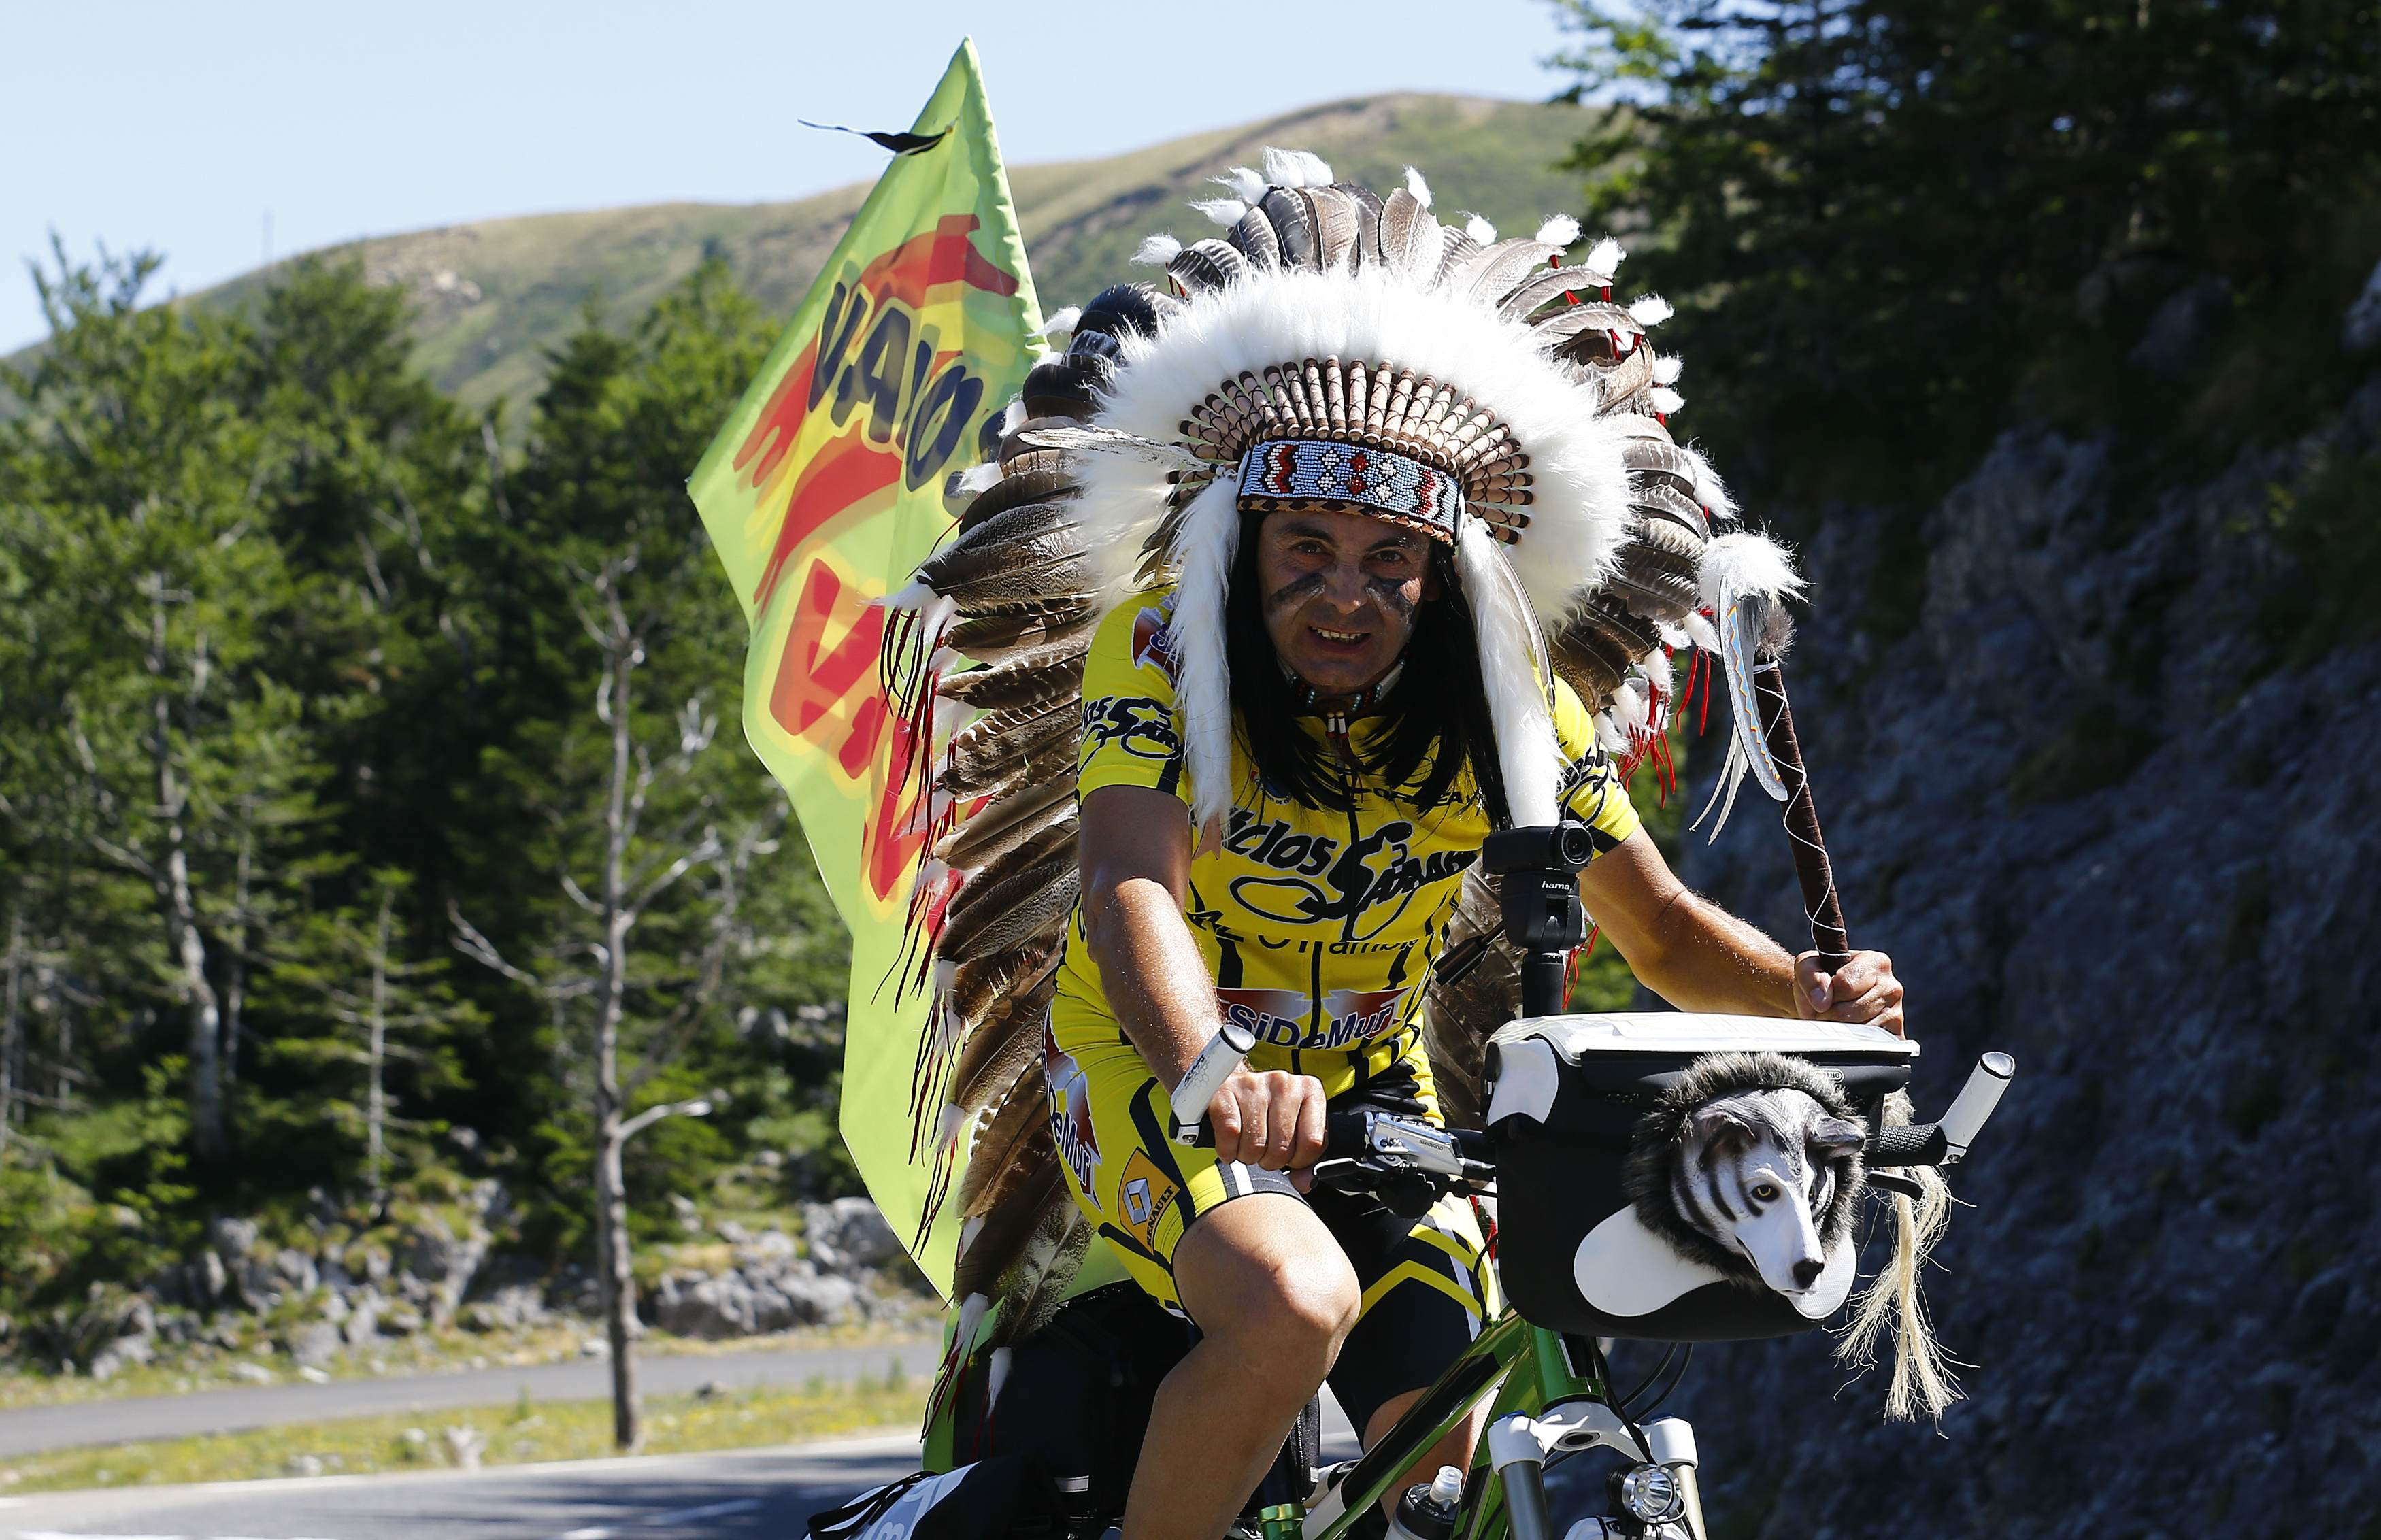 A supporter of Movistar rider Alejandro Valverde of Spain, dressed as an American Indian, rides his bicycle before the 10th stage of the race from Tarbes to La Pierre-Saint -Martin, France on July 14, 2015.